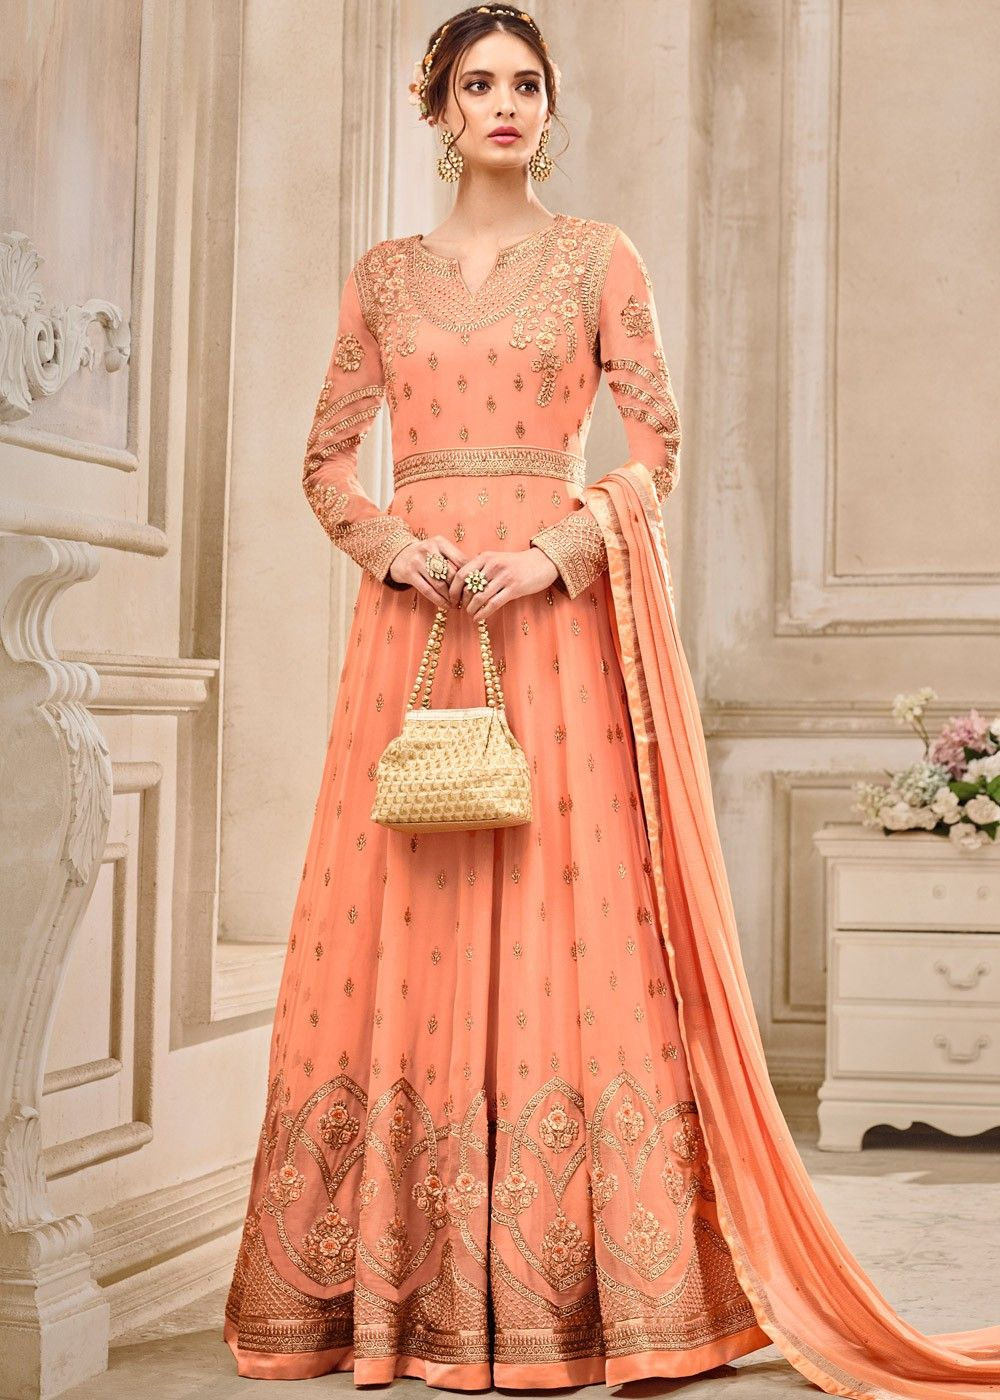 844ac5bb45 Light #orange full length #anarkali #kameez in #georgette enhanced by  intricate #resham #embroidery and stone work.